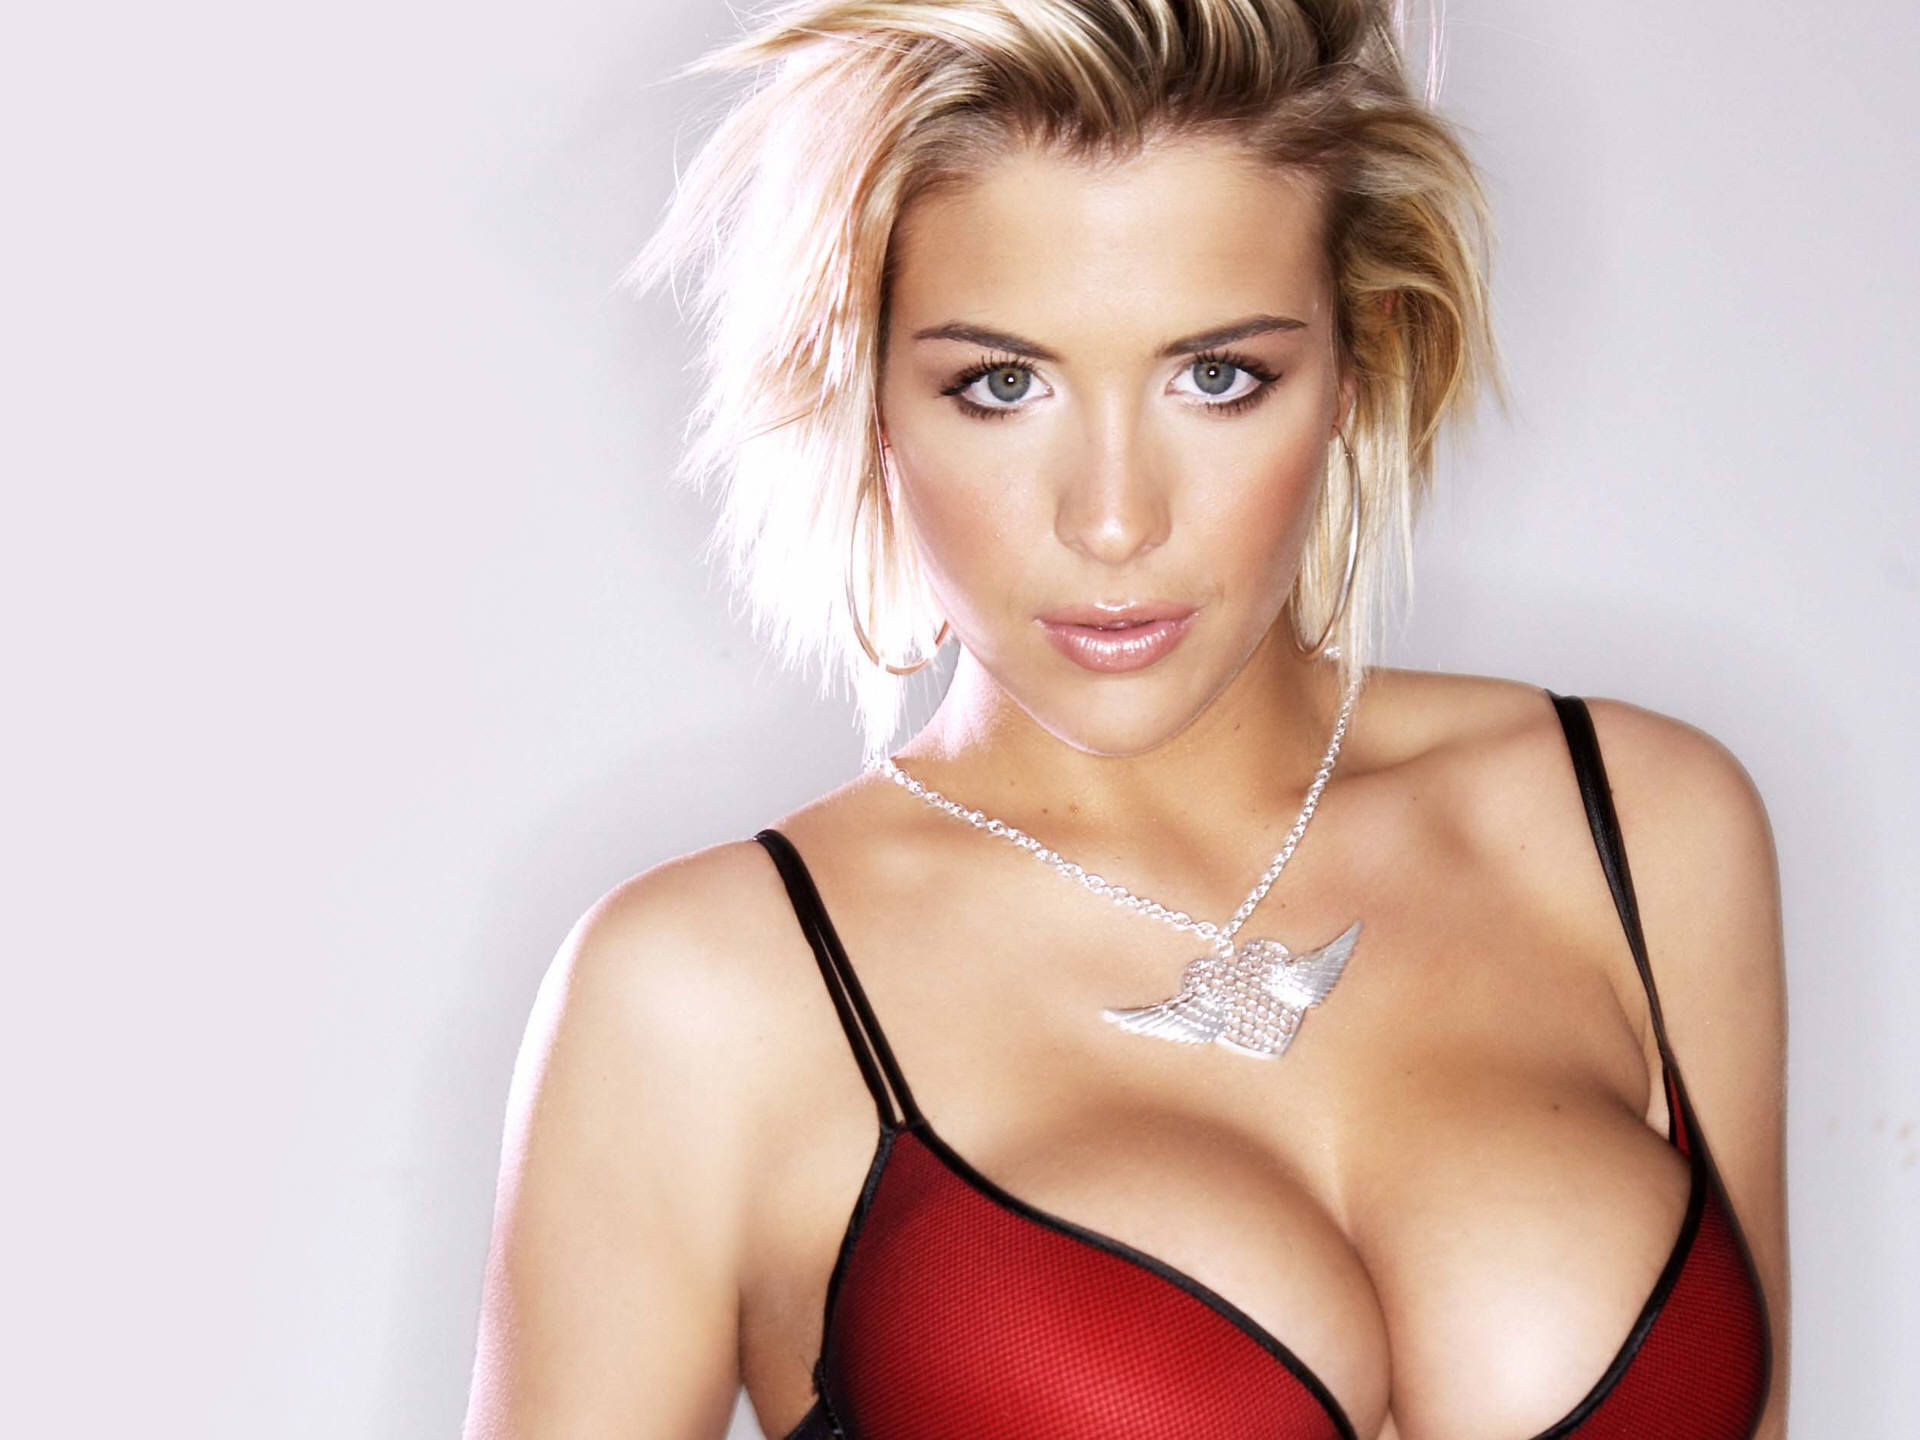 Gemma atkinson topless pics, wife likes her pussy licked